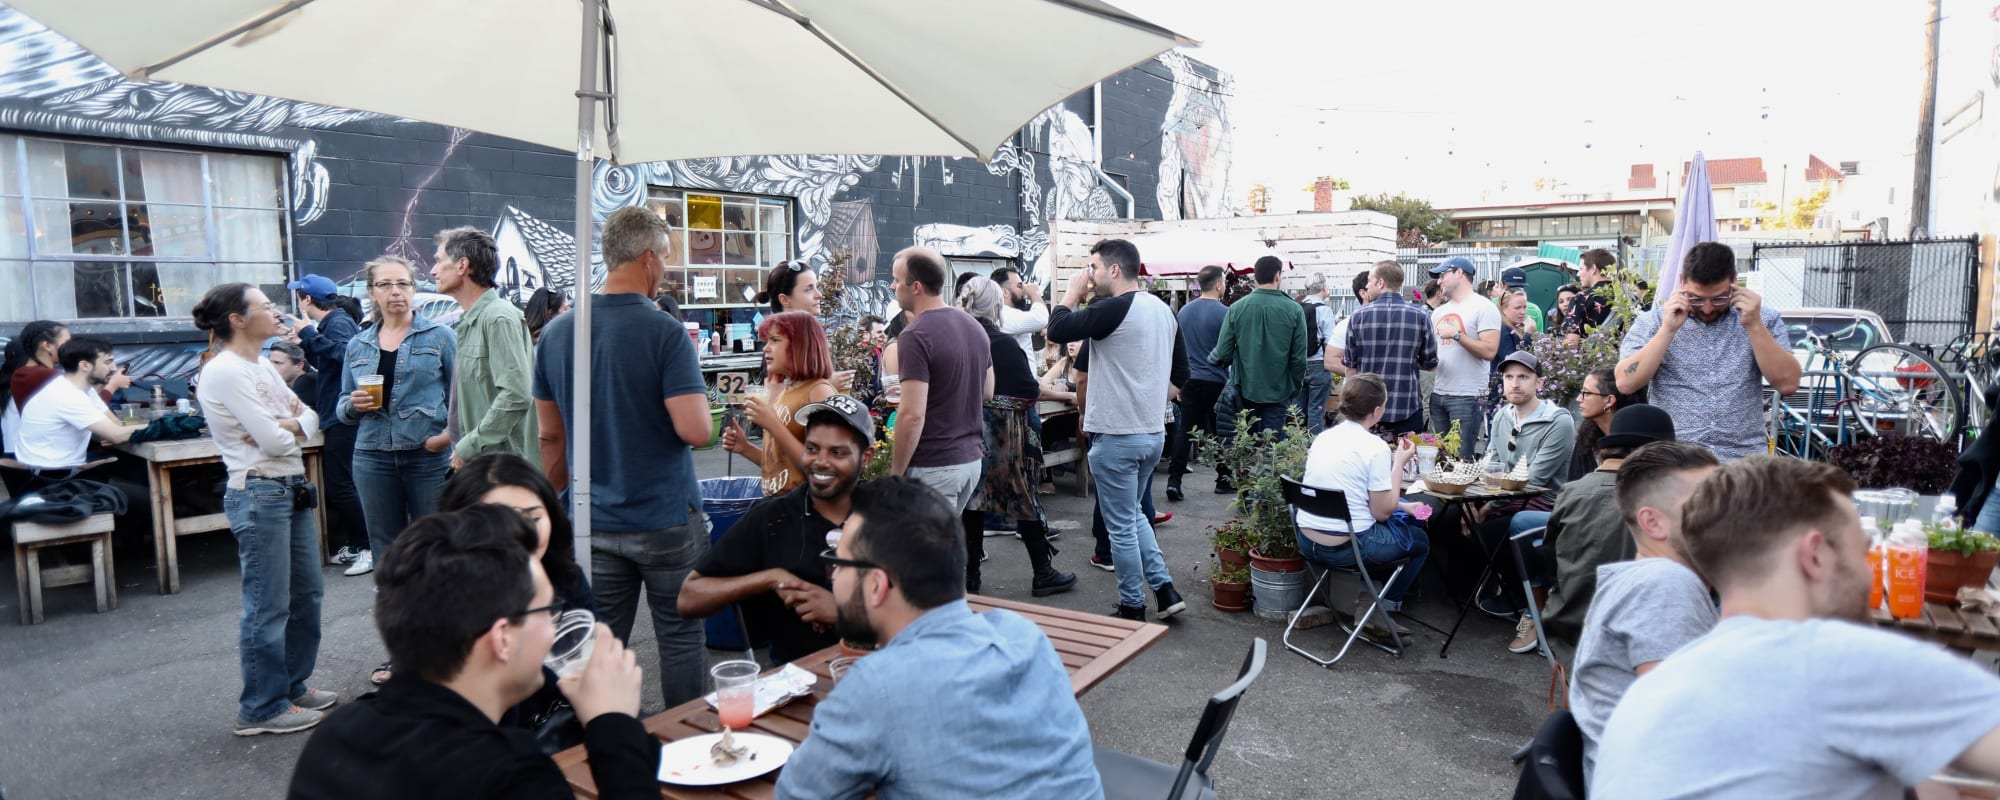 Folks gathering and eating near The Moran in Oakland, California